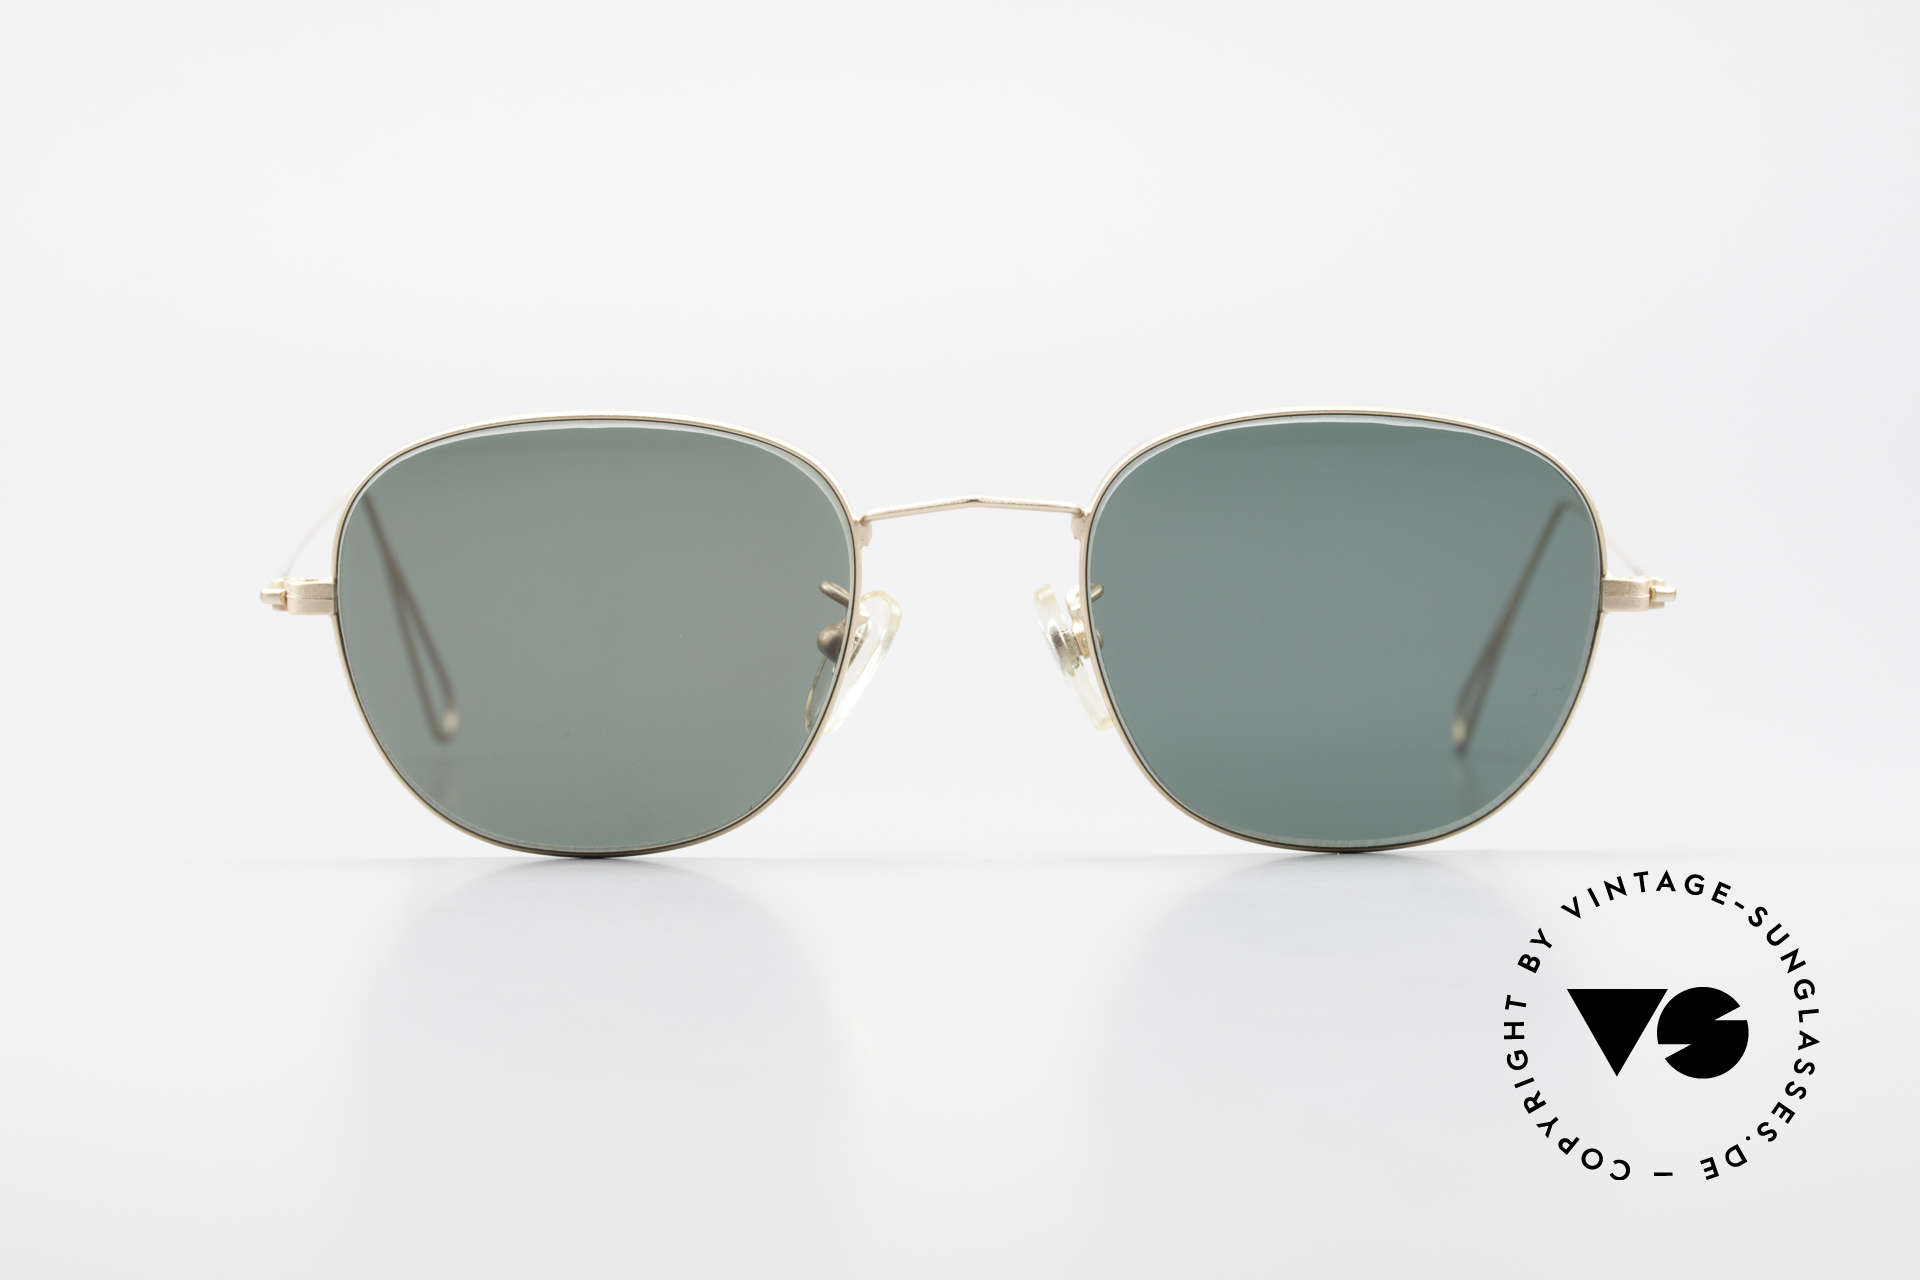 Cutler And Gross 0307 Classic 90s Designer Sunglasses, classic, timeless UNDERSTATEMENT luxury sunglasses, Made for Men and Women